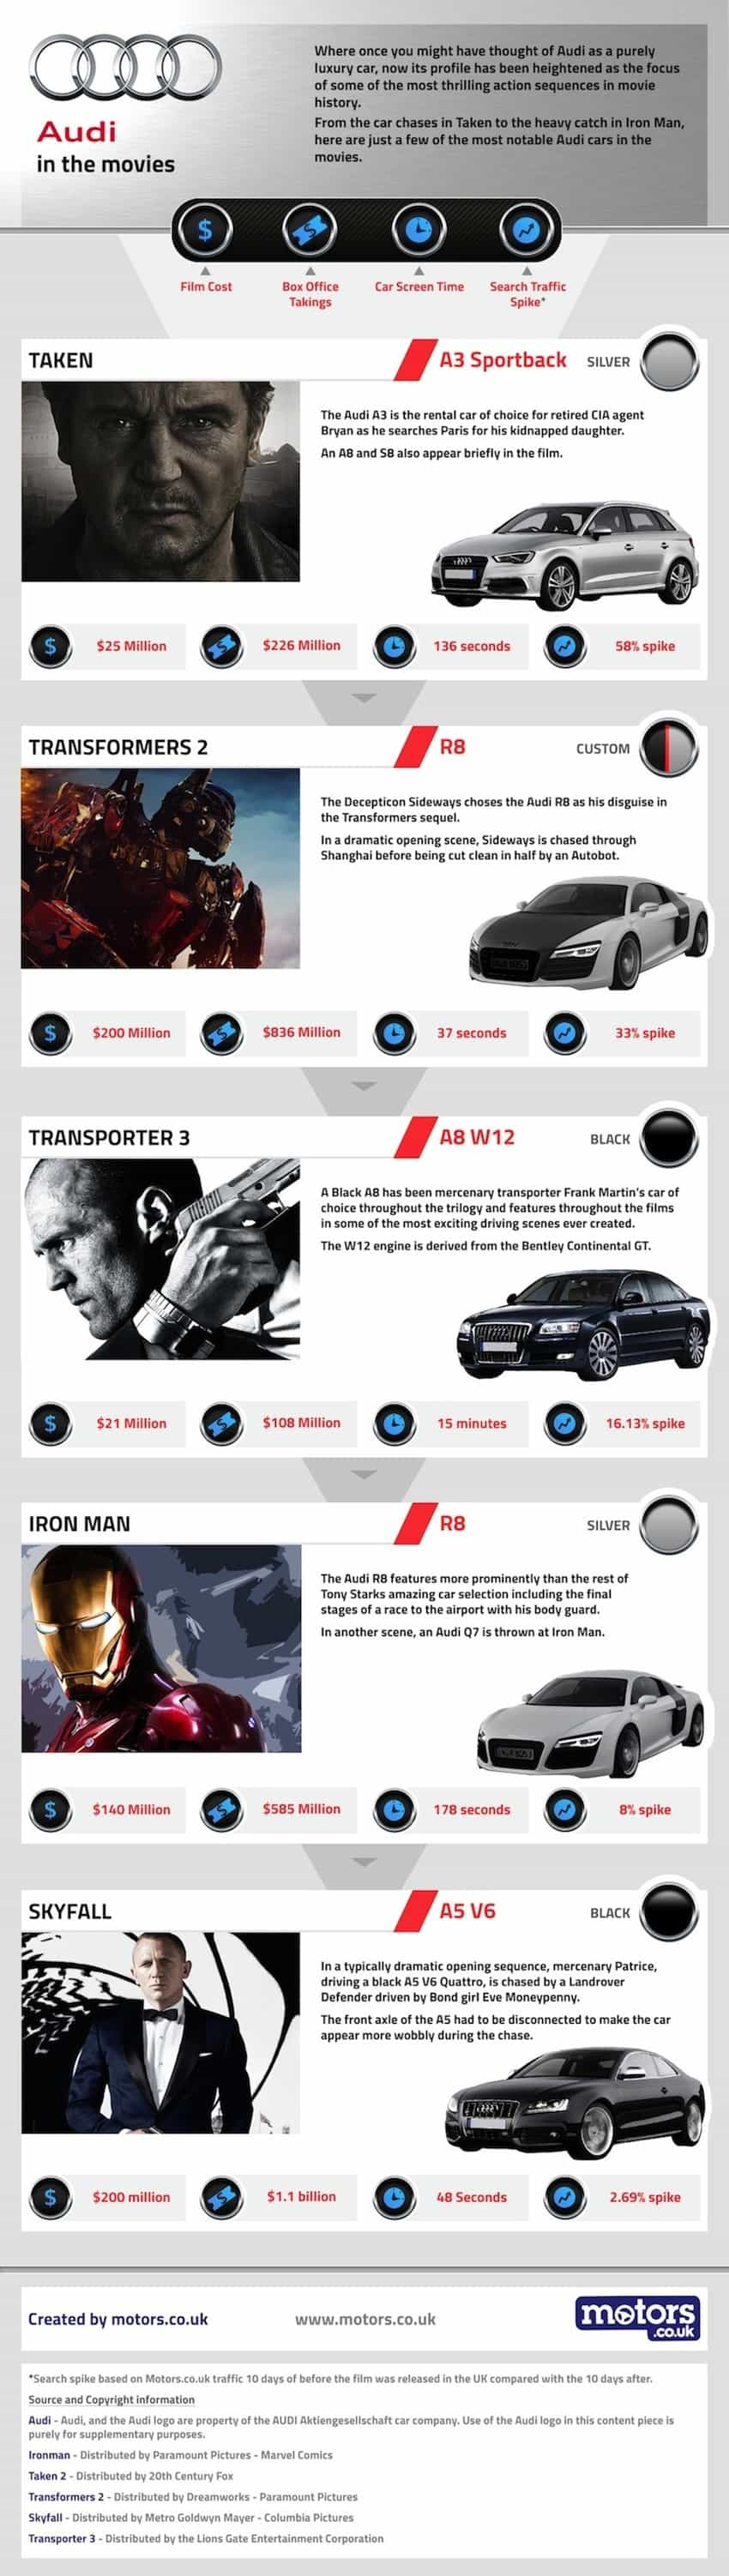 movie infographic